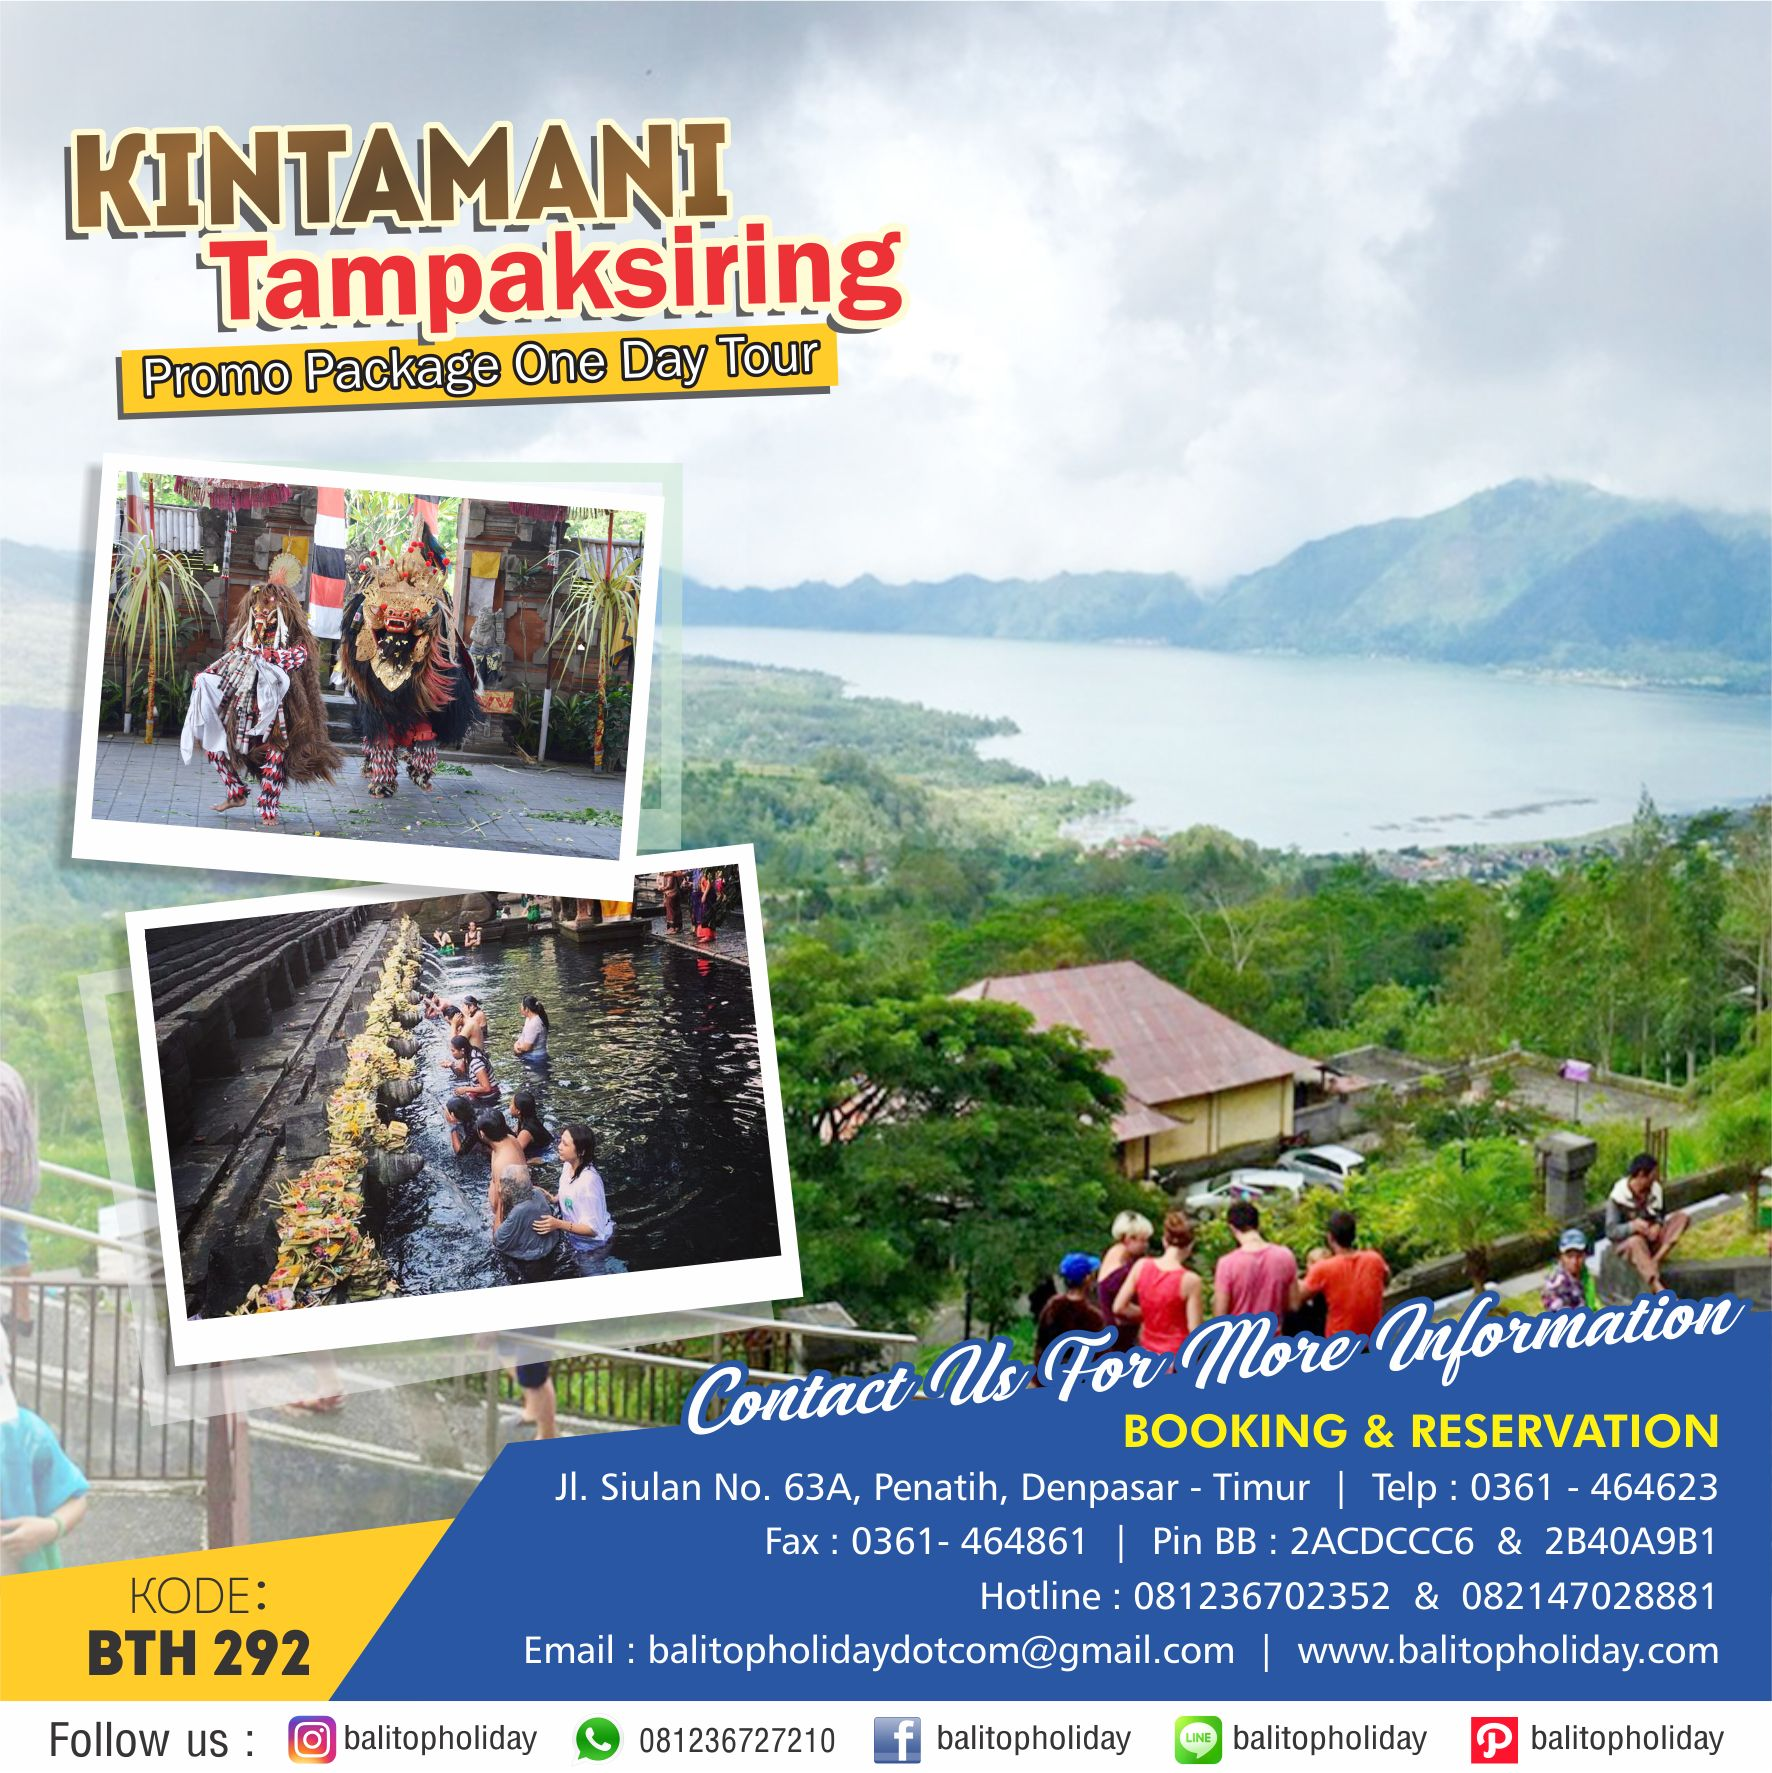 Kintamani Tampaksiring One Day Tour BTH 292